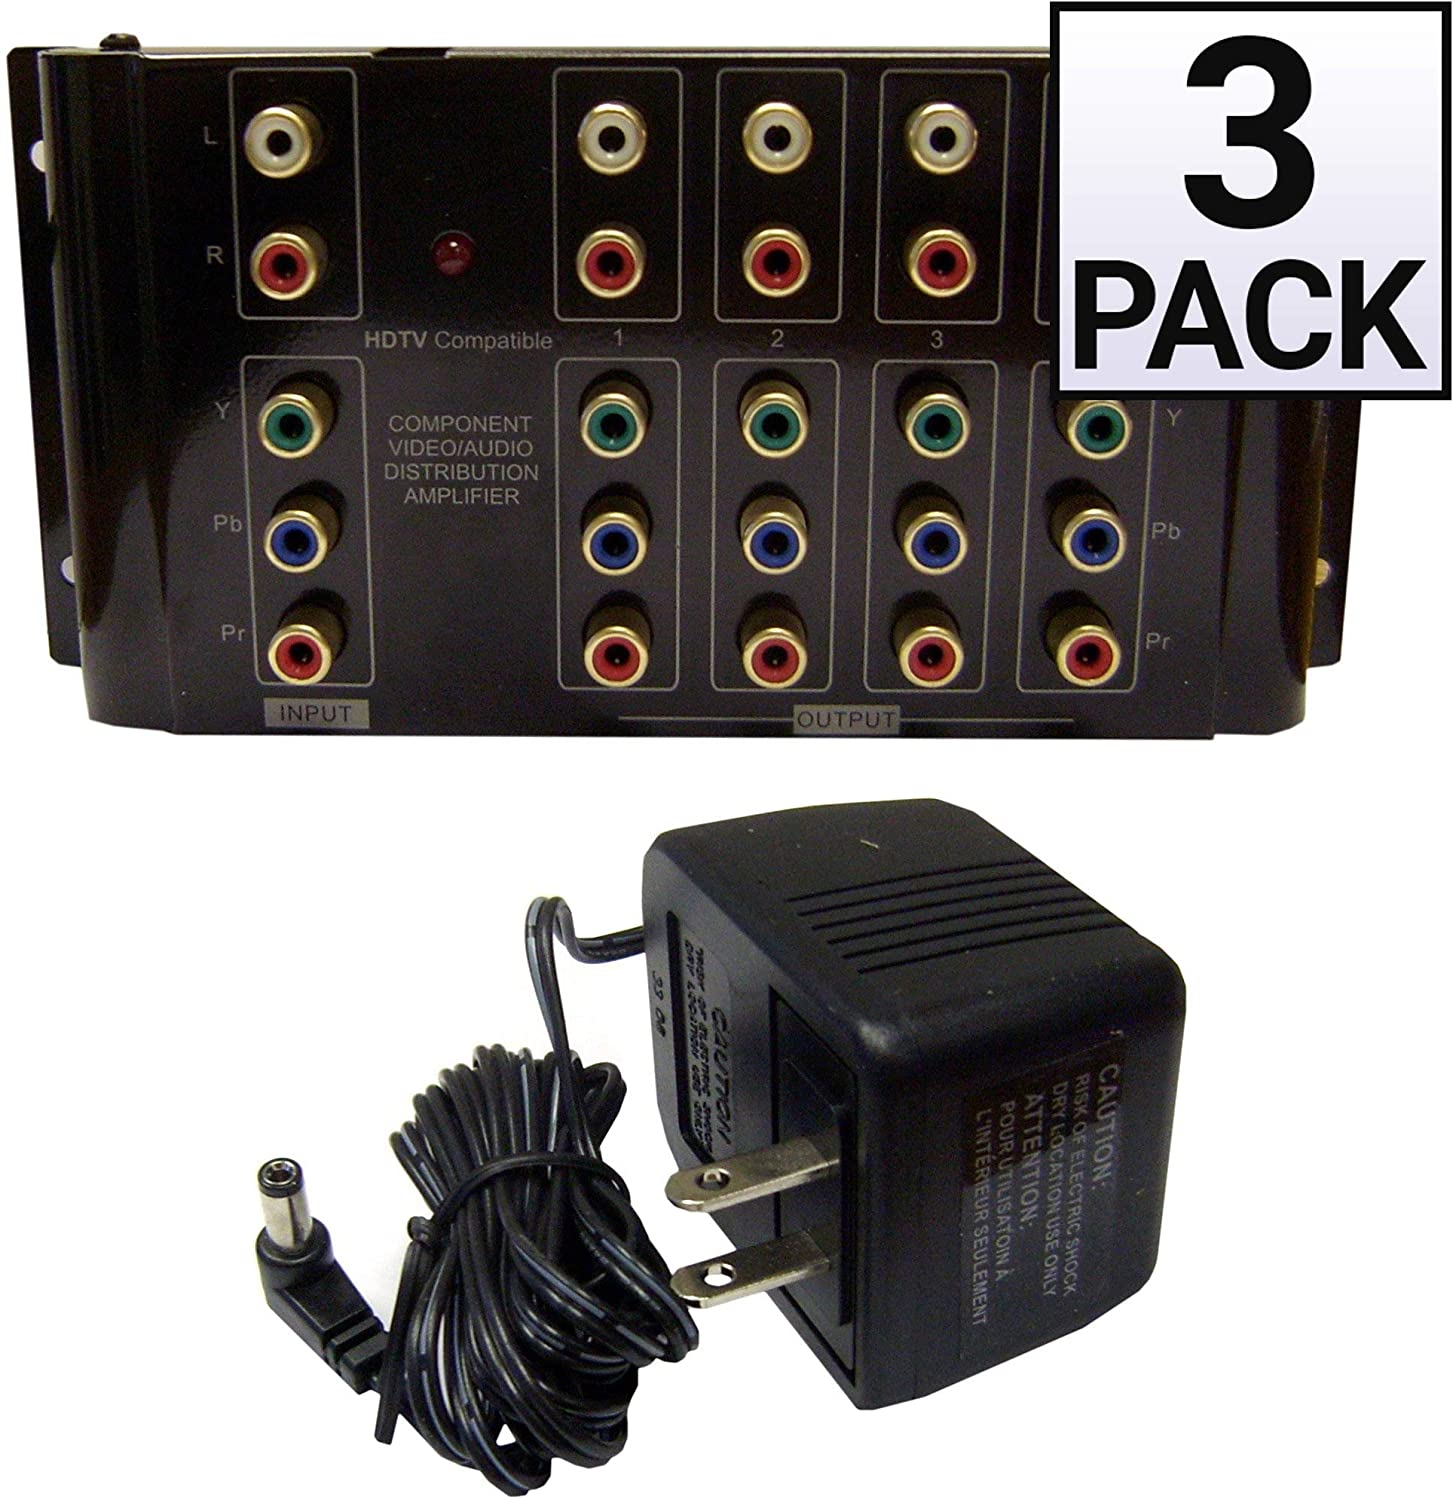 GOWOS (3 Pack) Component Video and Audio RCA Distribution Amplifier/Splitter, 4 Way